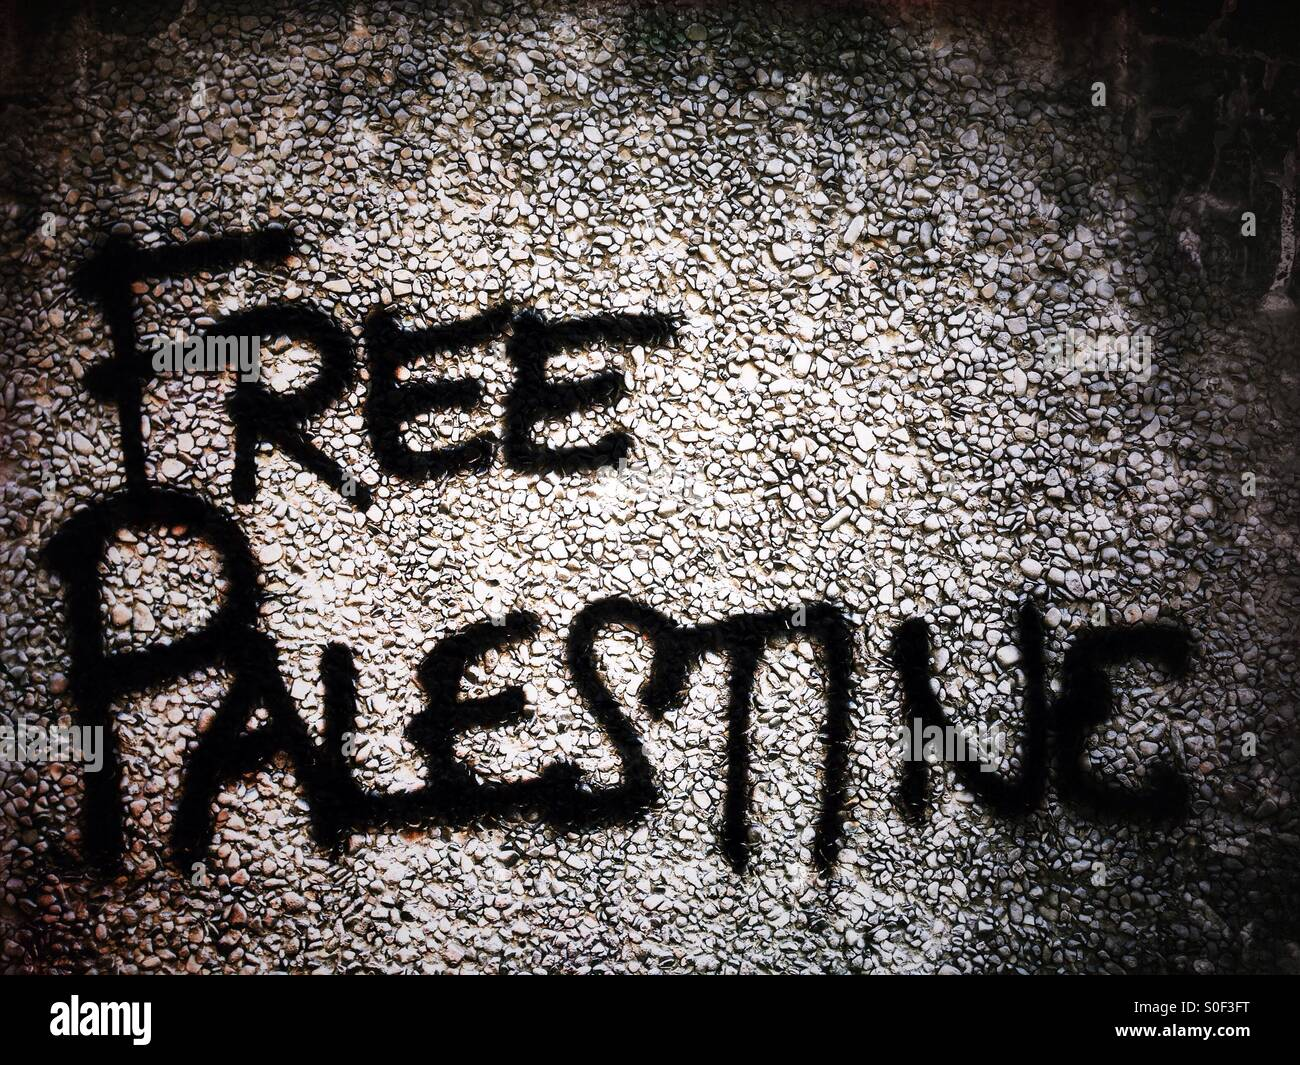 Free palestine Graffiti on a wall in Berlin - Stock Image